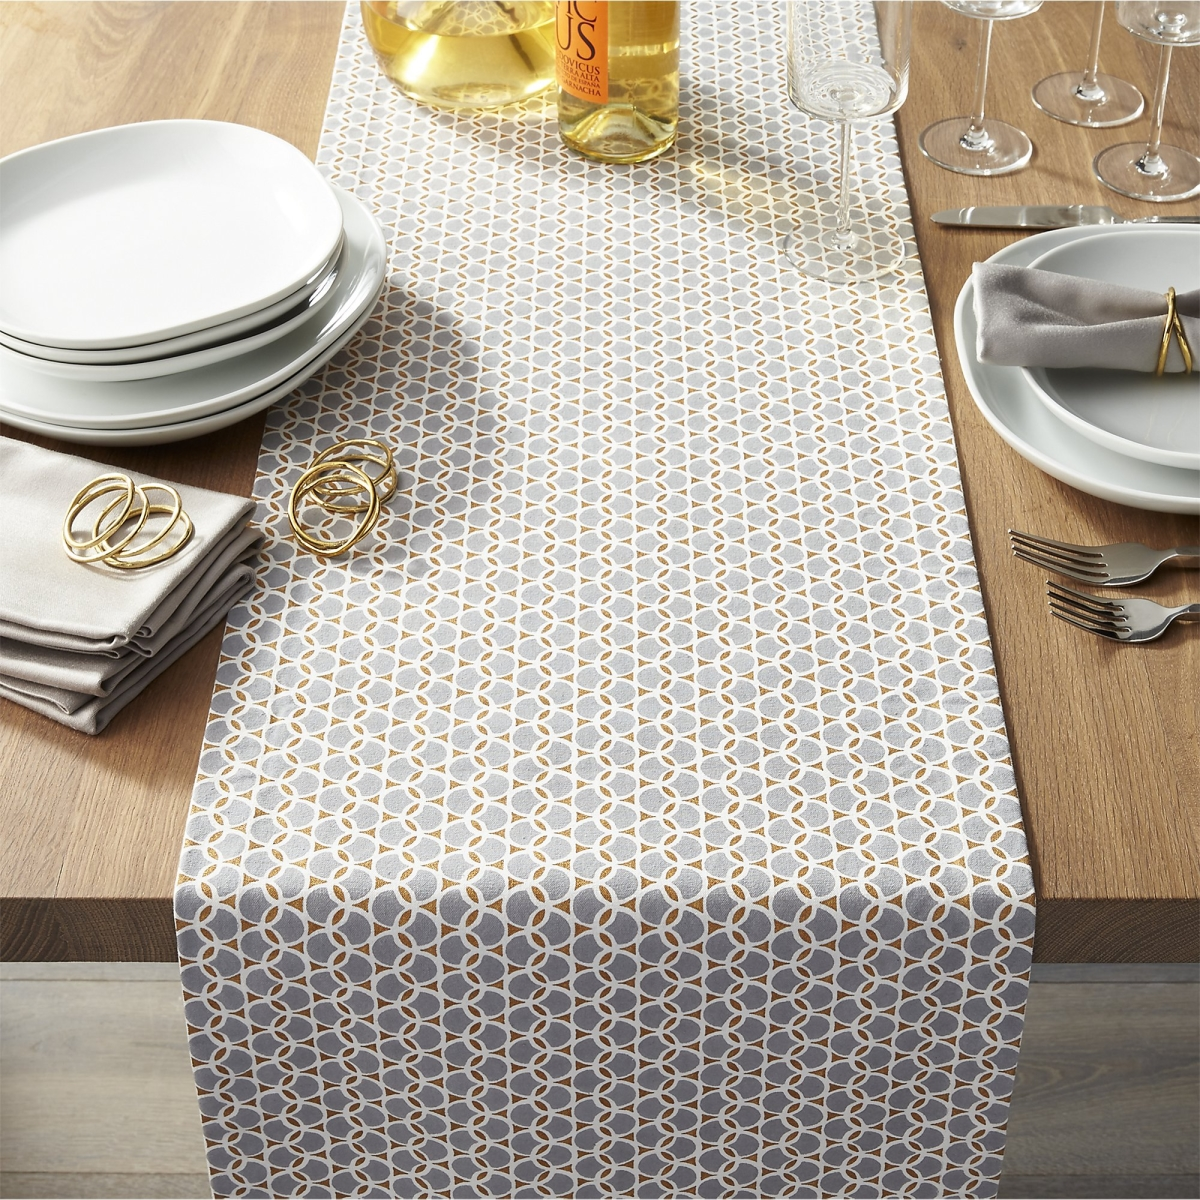 Table Runner The Finest Table Runners For Your Dining Table Geometric